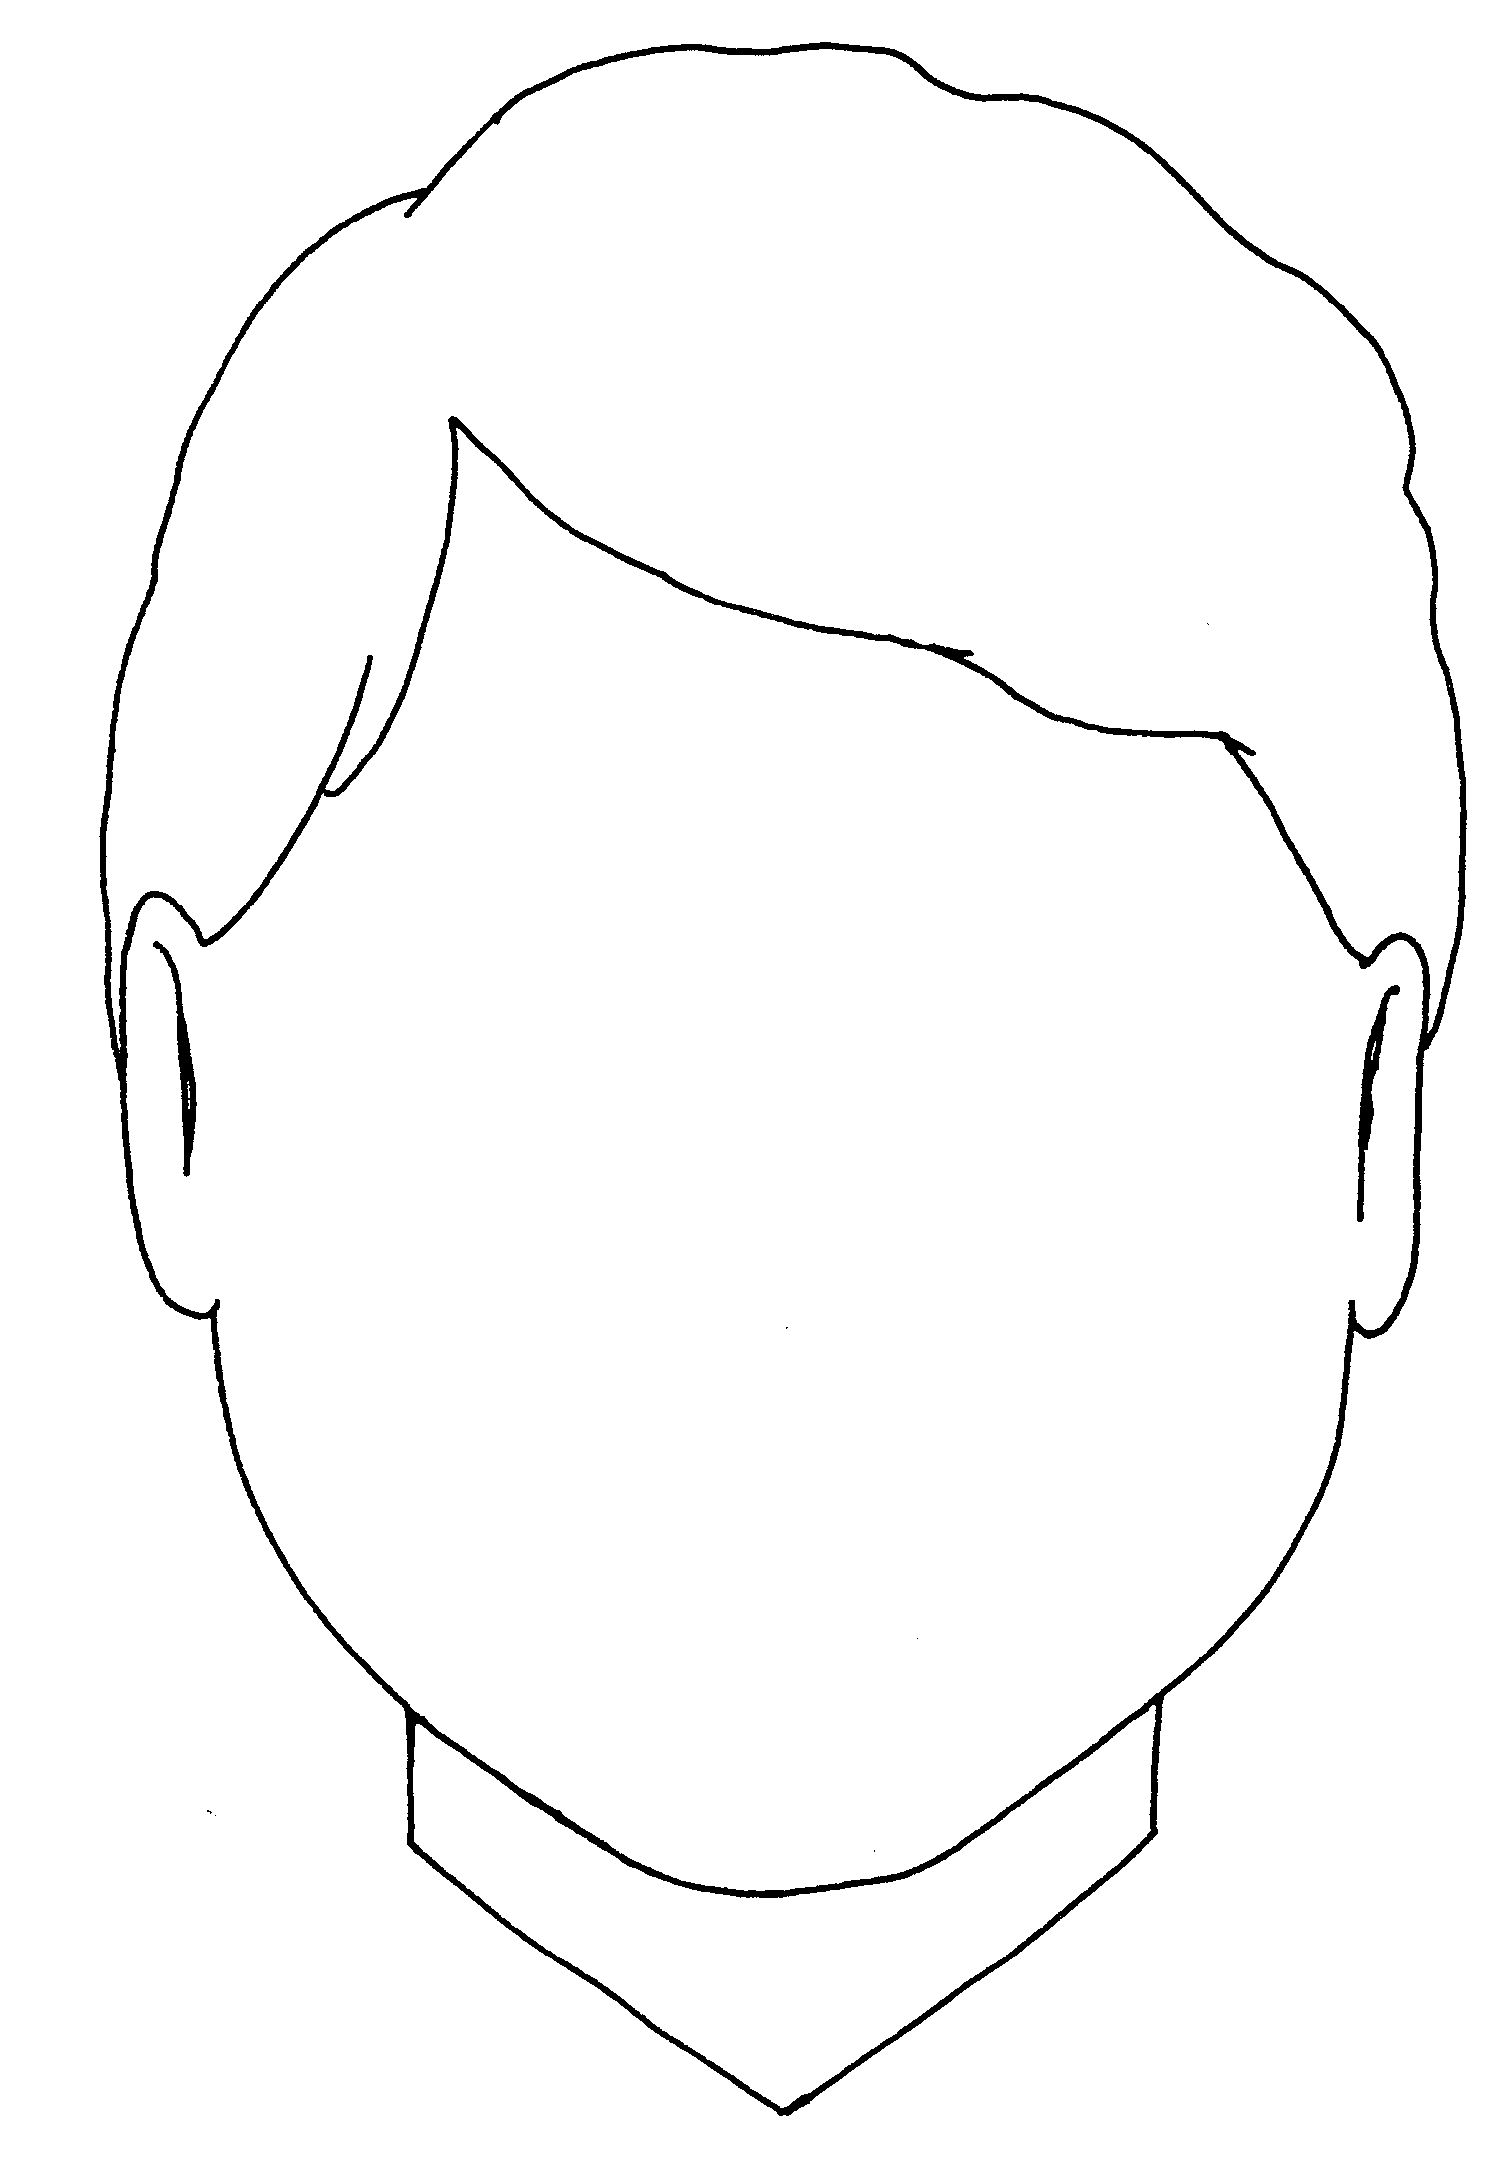 Boy Face That Can Be Used For Several Primary Lesson